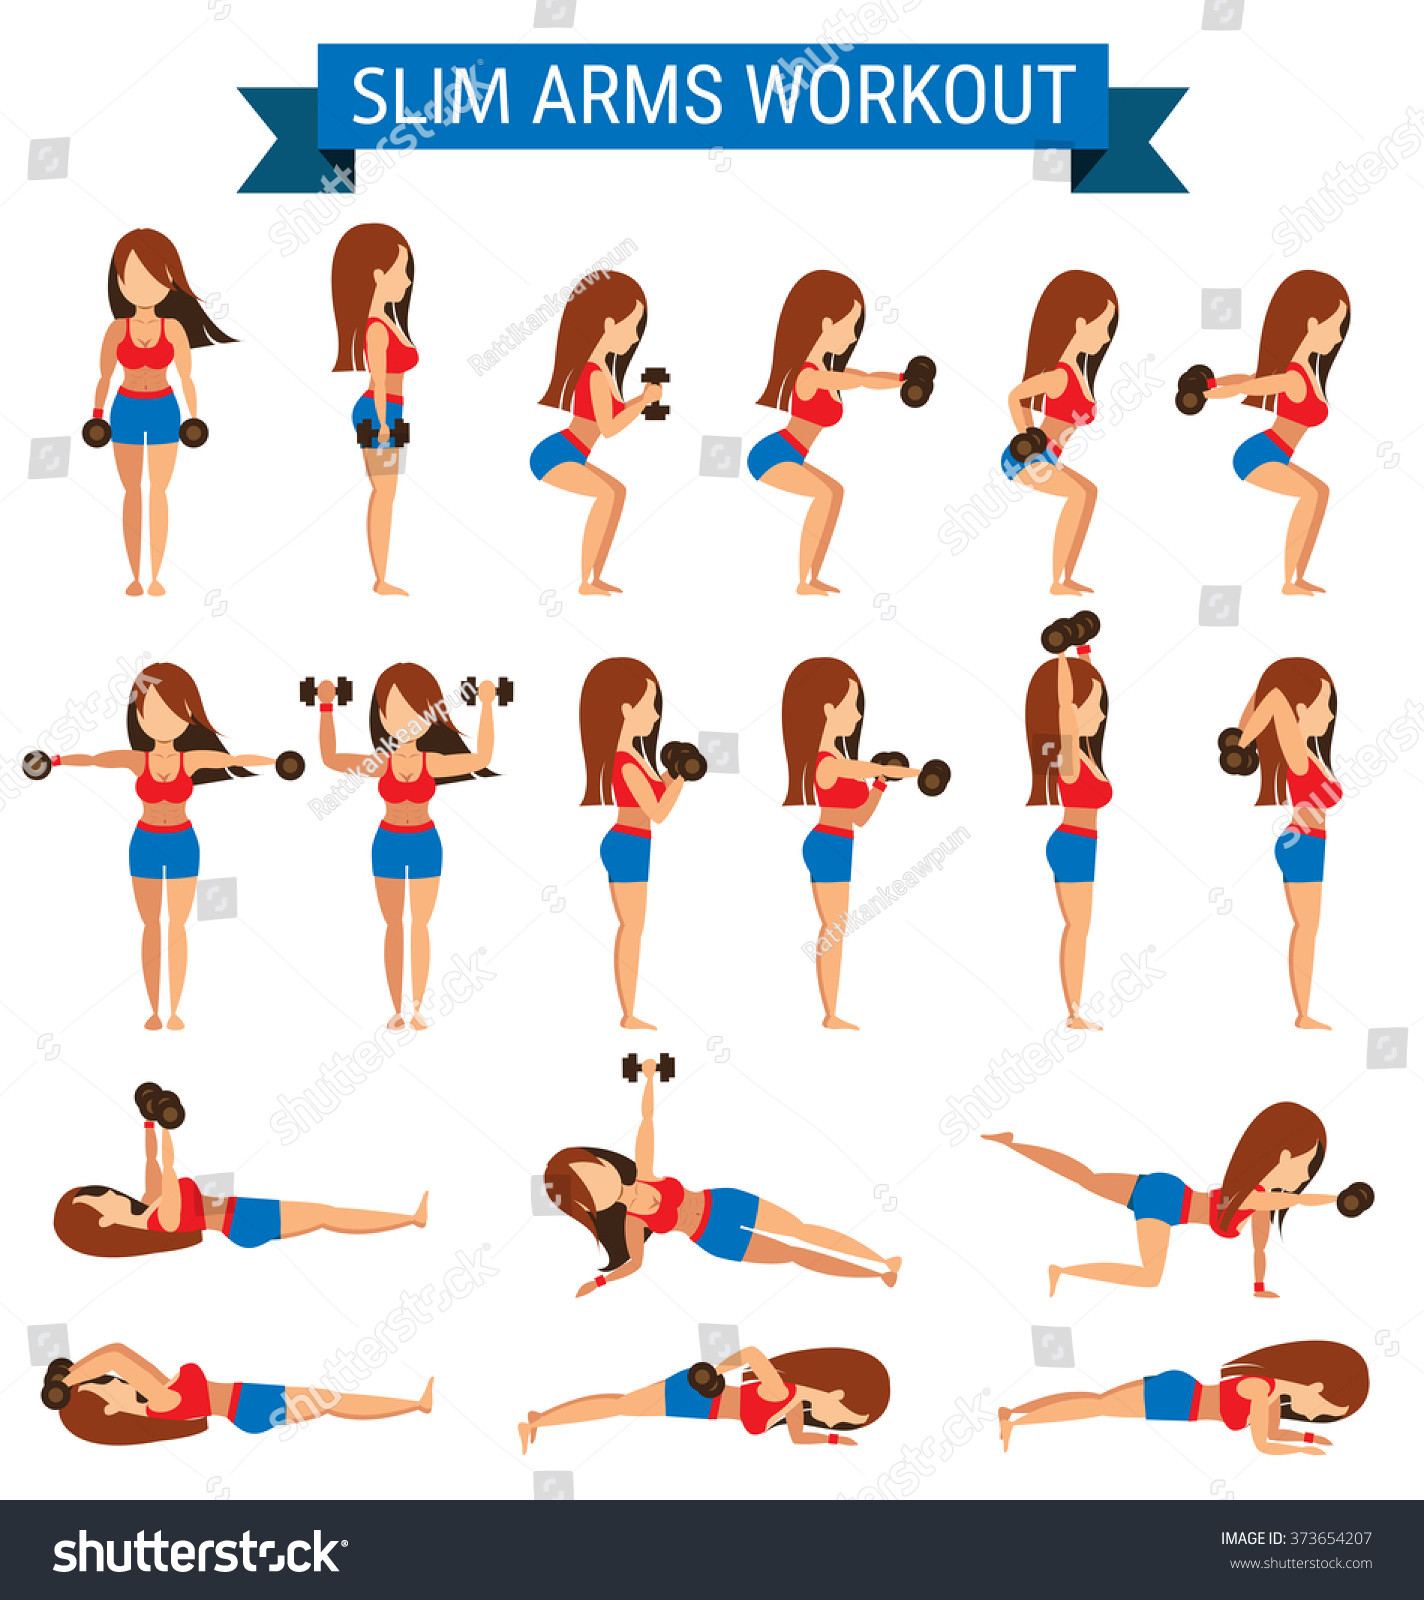 Set Cardio Exercise Slim Arms Workout Stock Vector 373654207 - Shutterstock